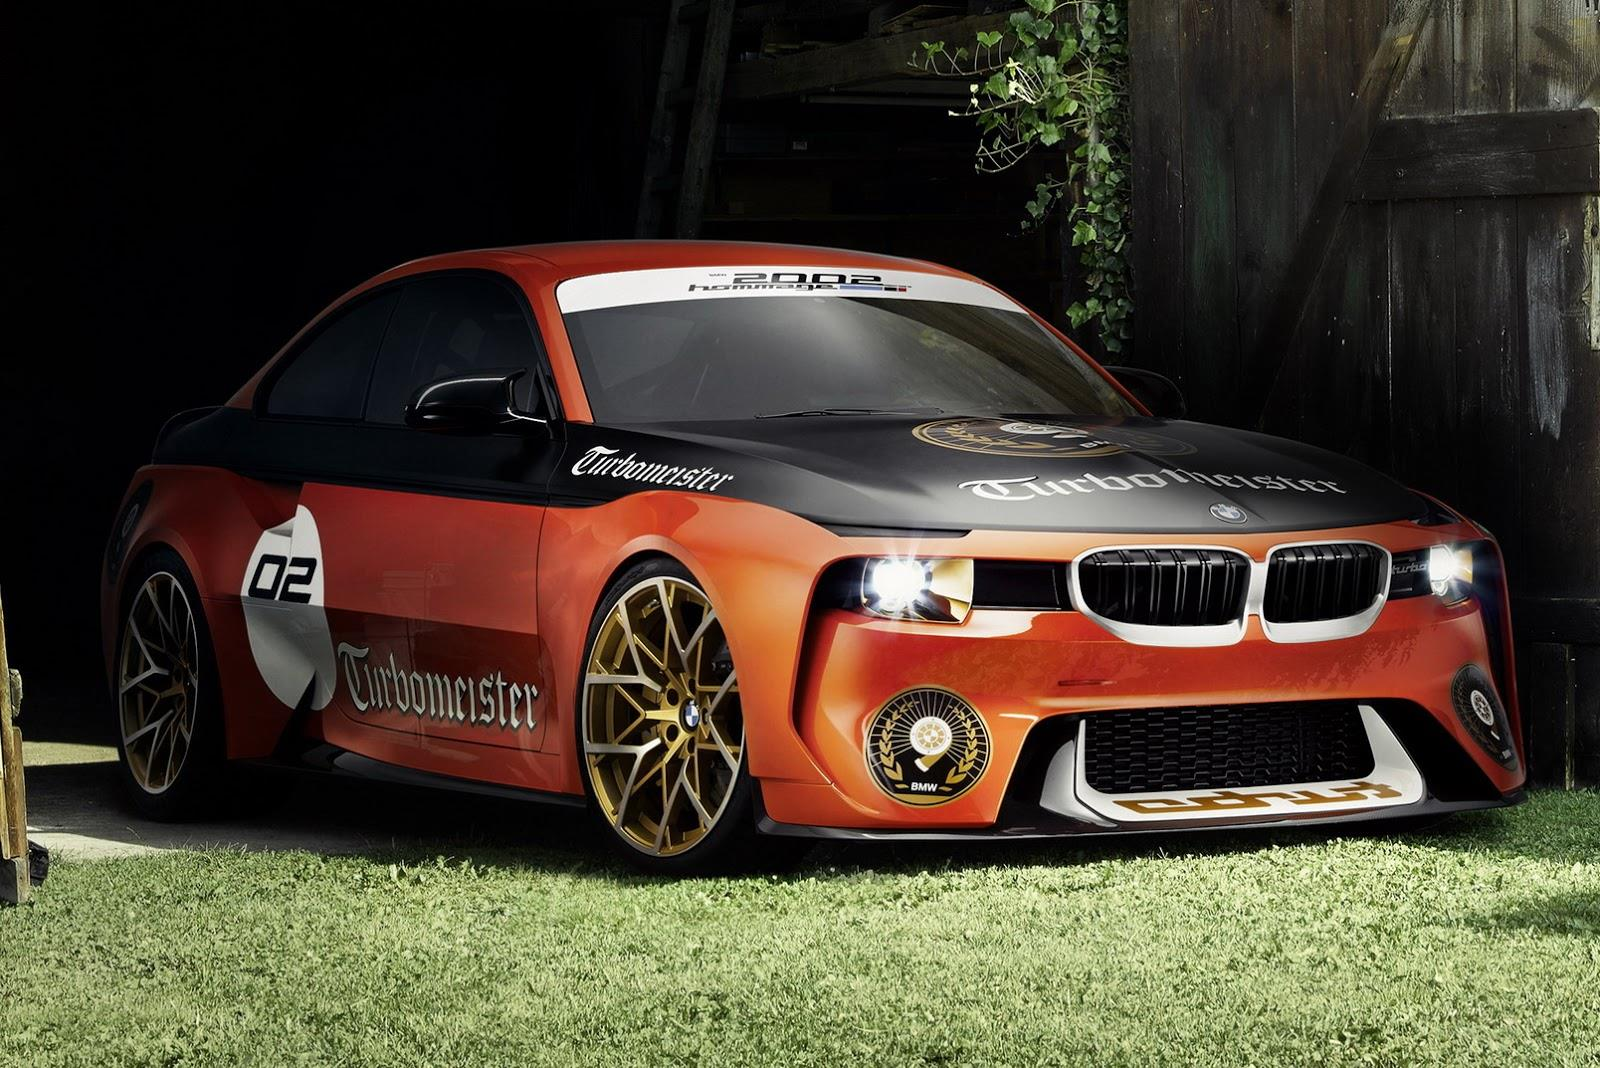 2016 BMW 2002 Hommage concept photo gallery